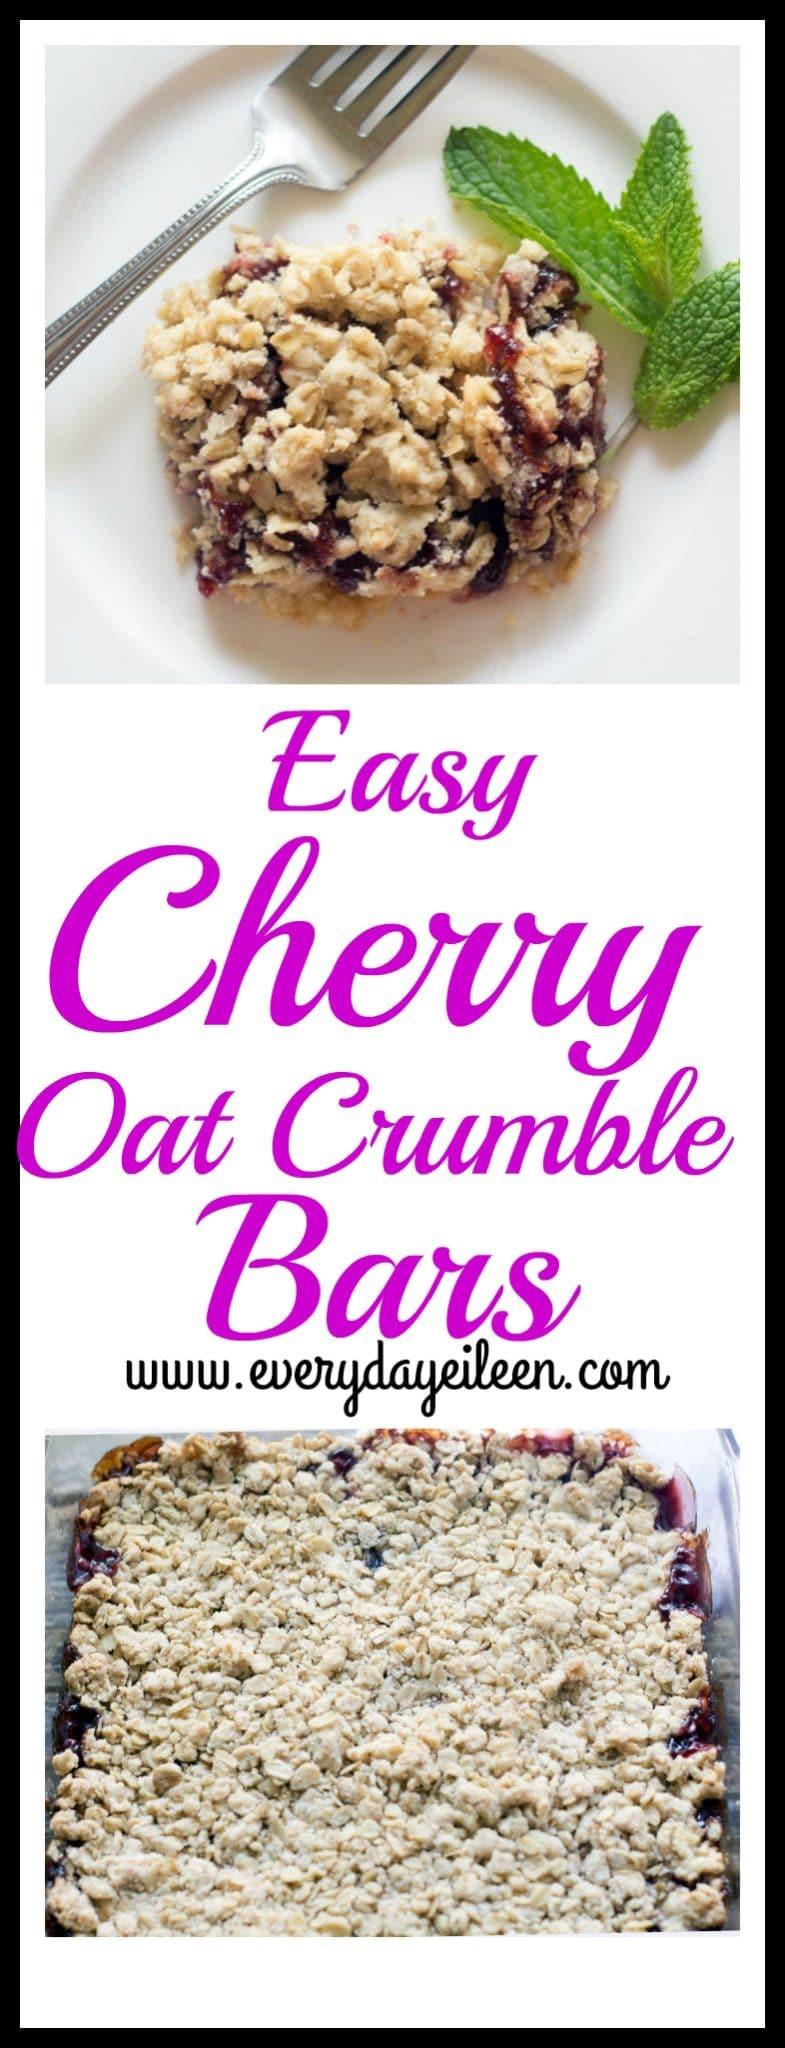 easy cherry oat crumble bars